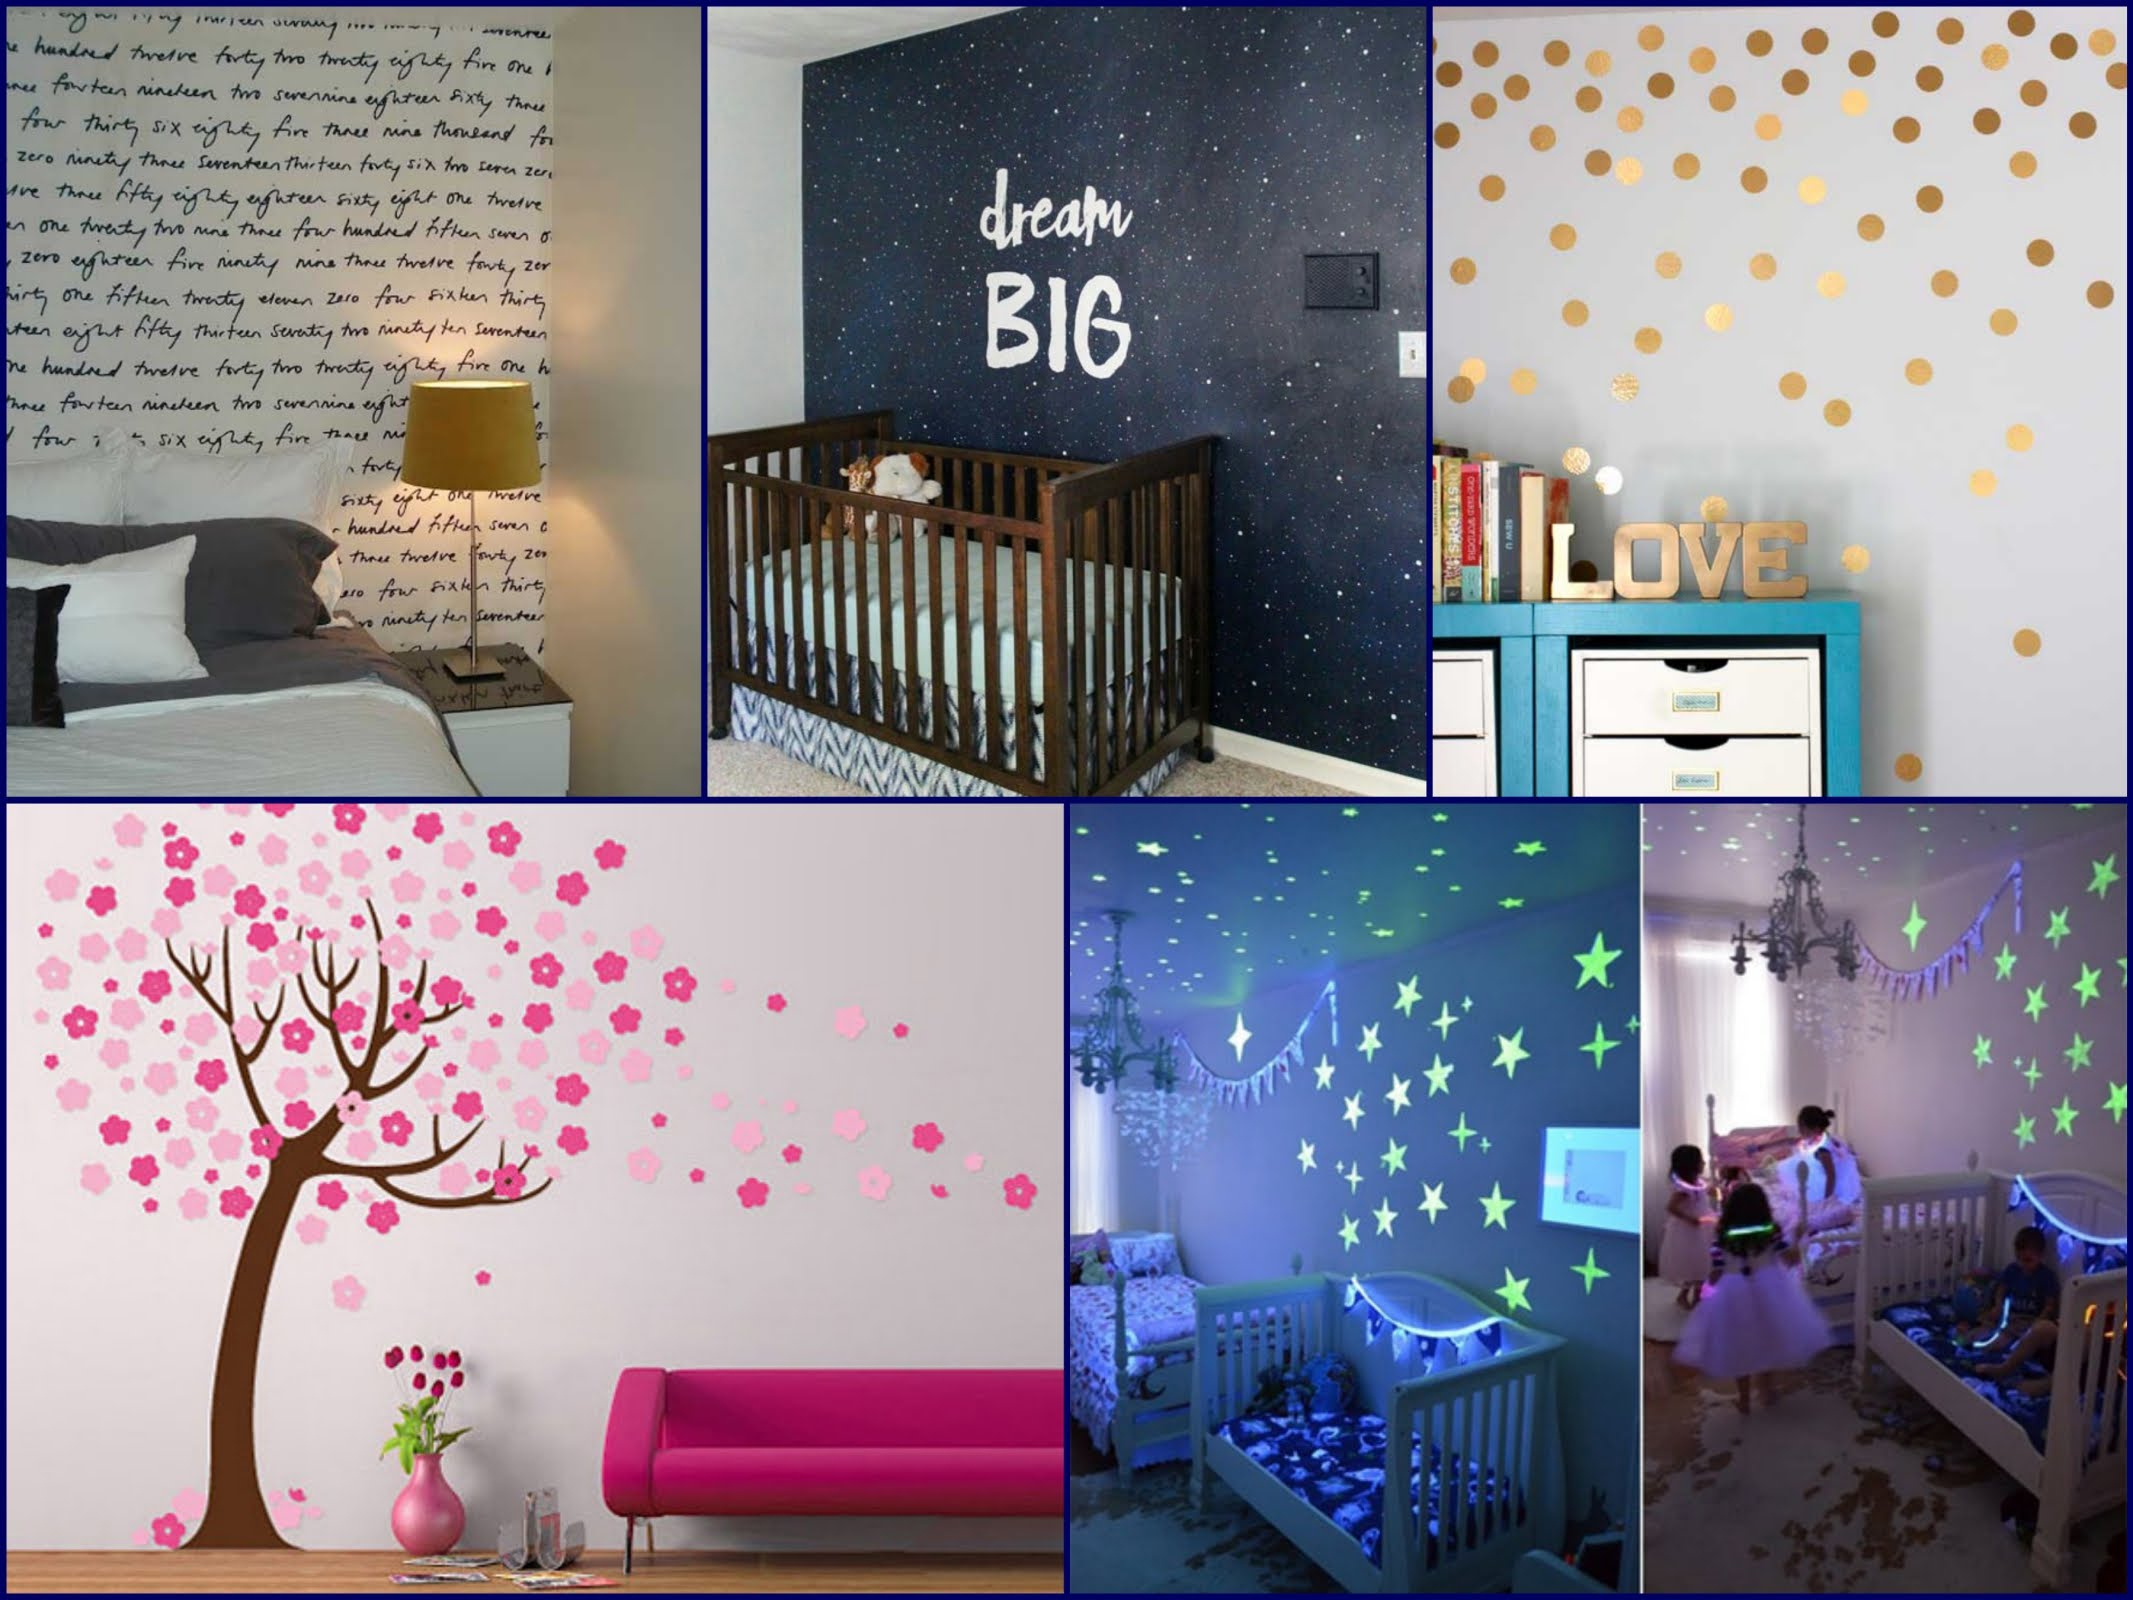 Lovely Diy Wall Painting Ideas - Easy Home Decor - Youtube inside Diy Wall Painting Ideas